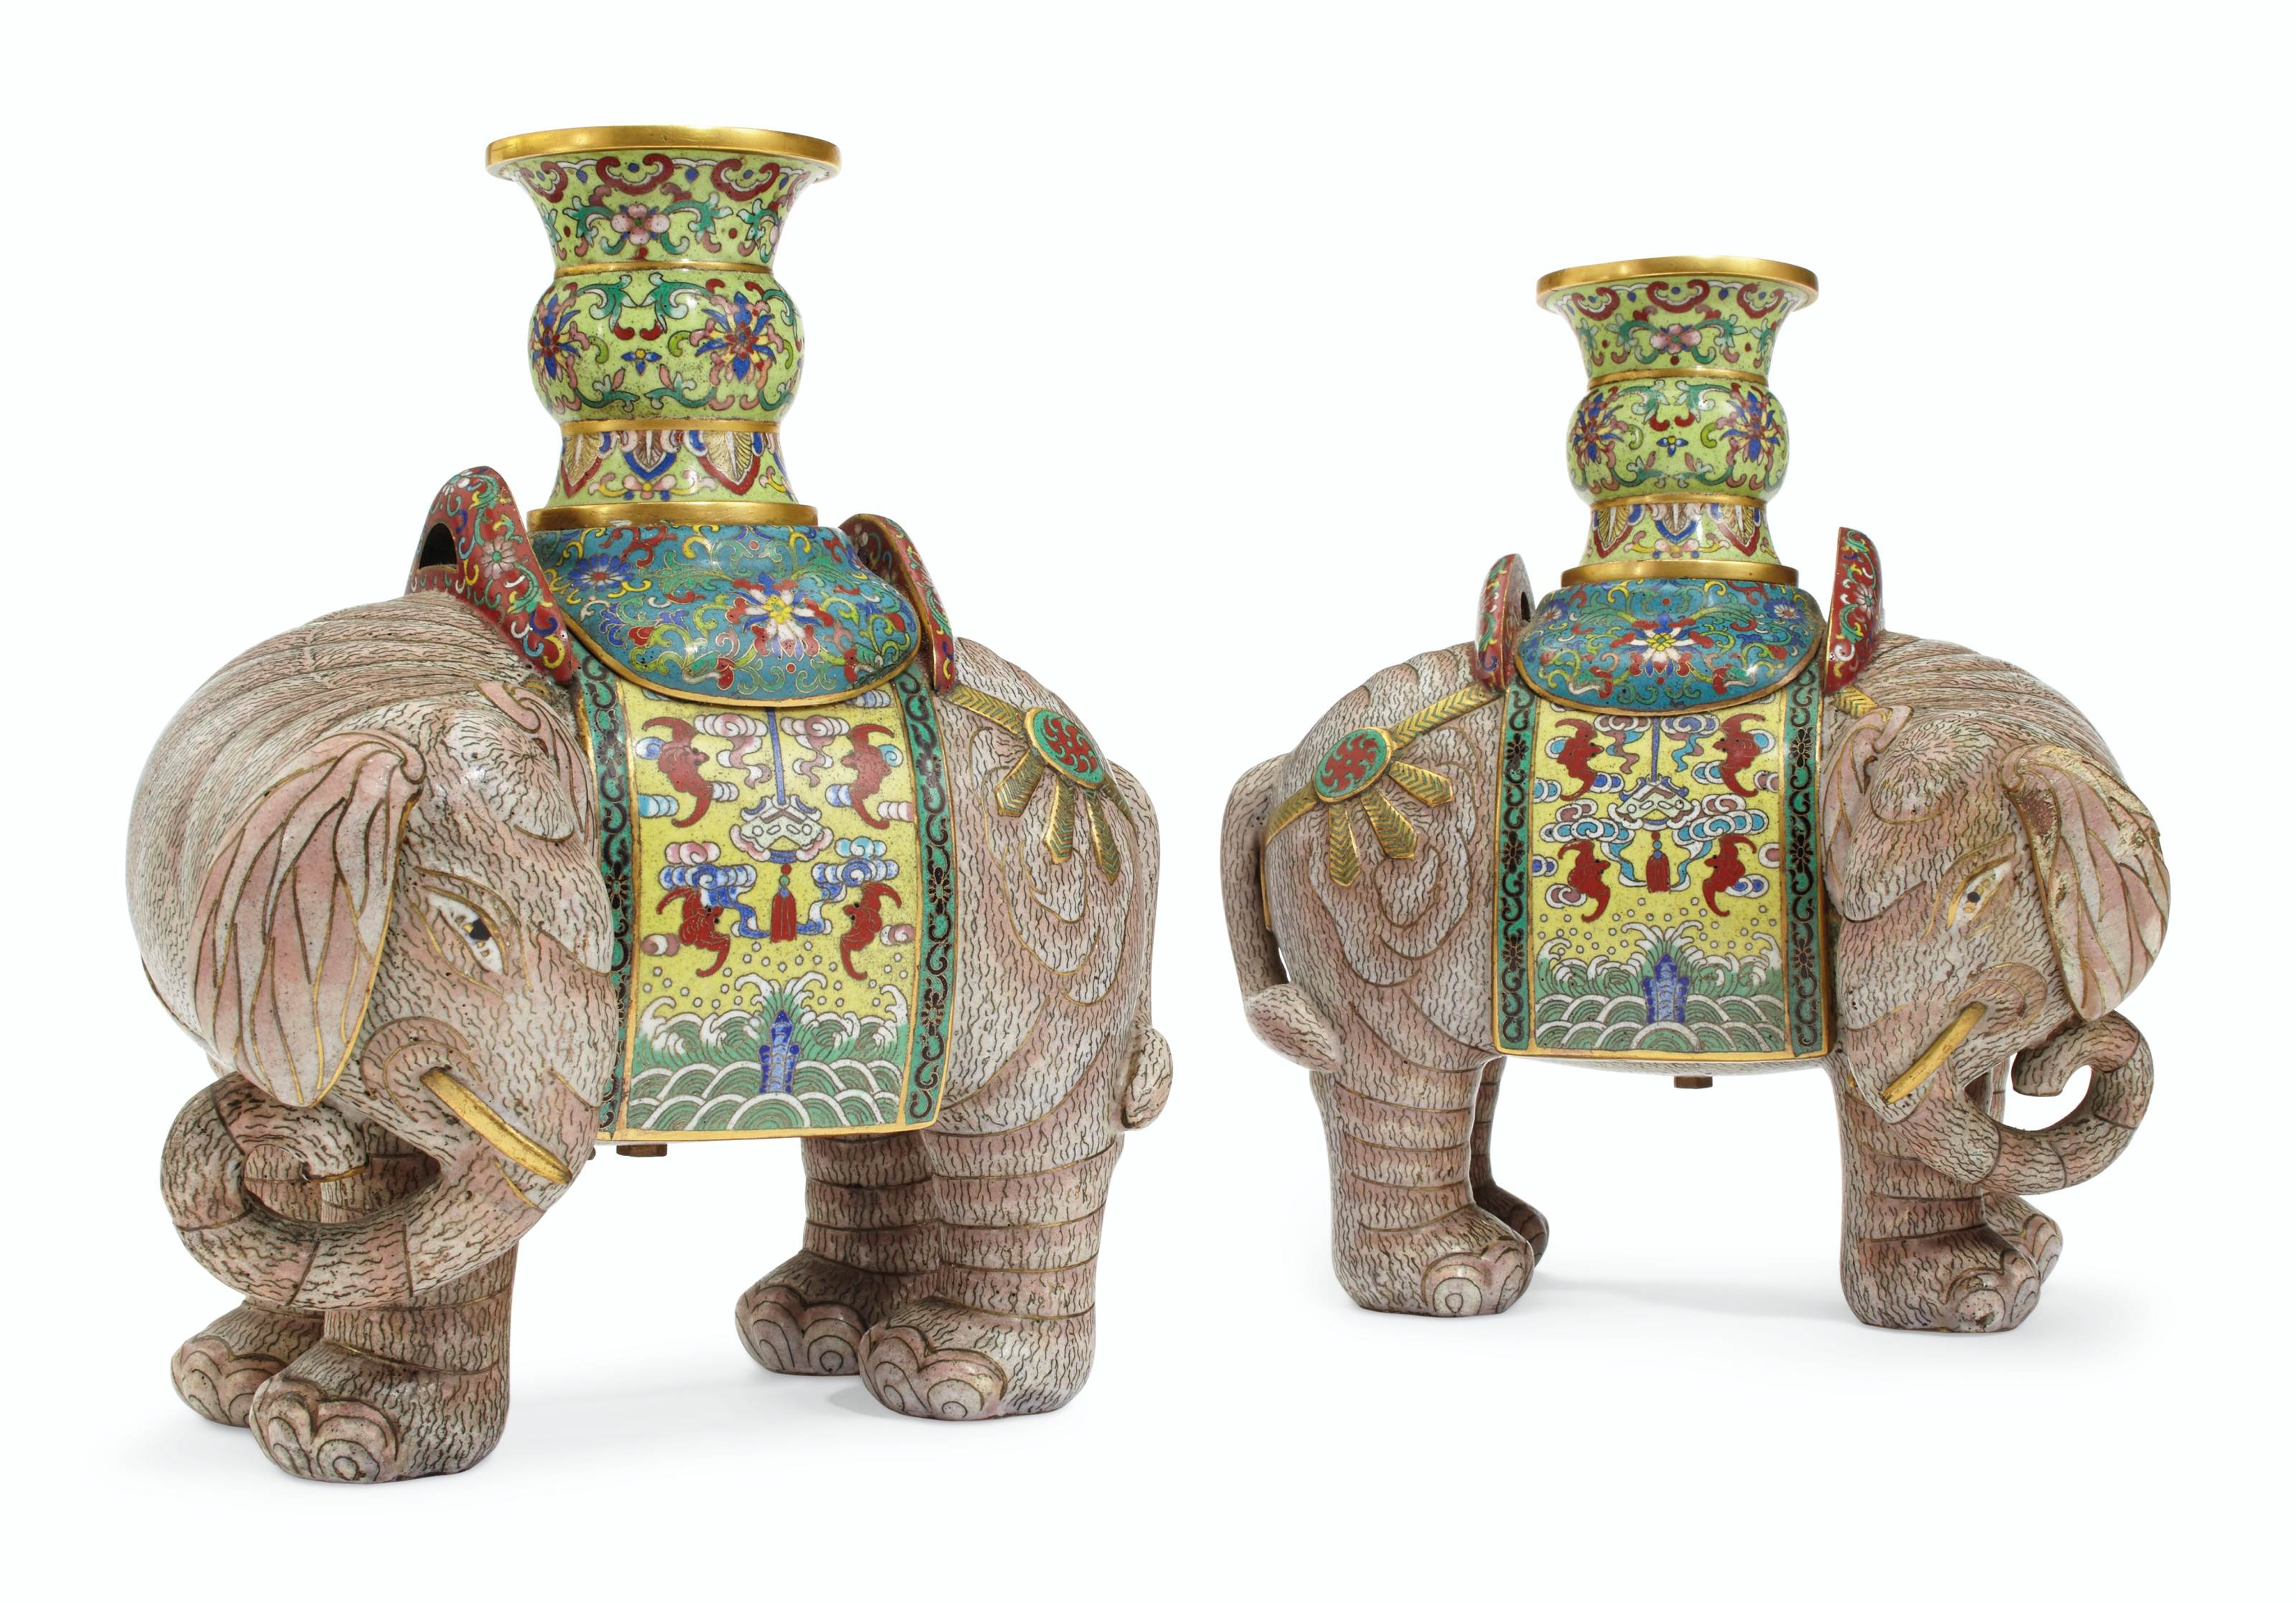 A PAIR OF CHINESE CLOISONNÉ ENAMEL ELEPHANTS